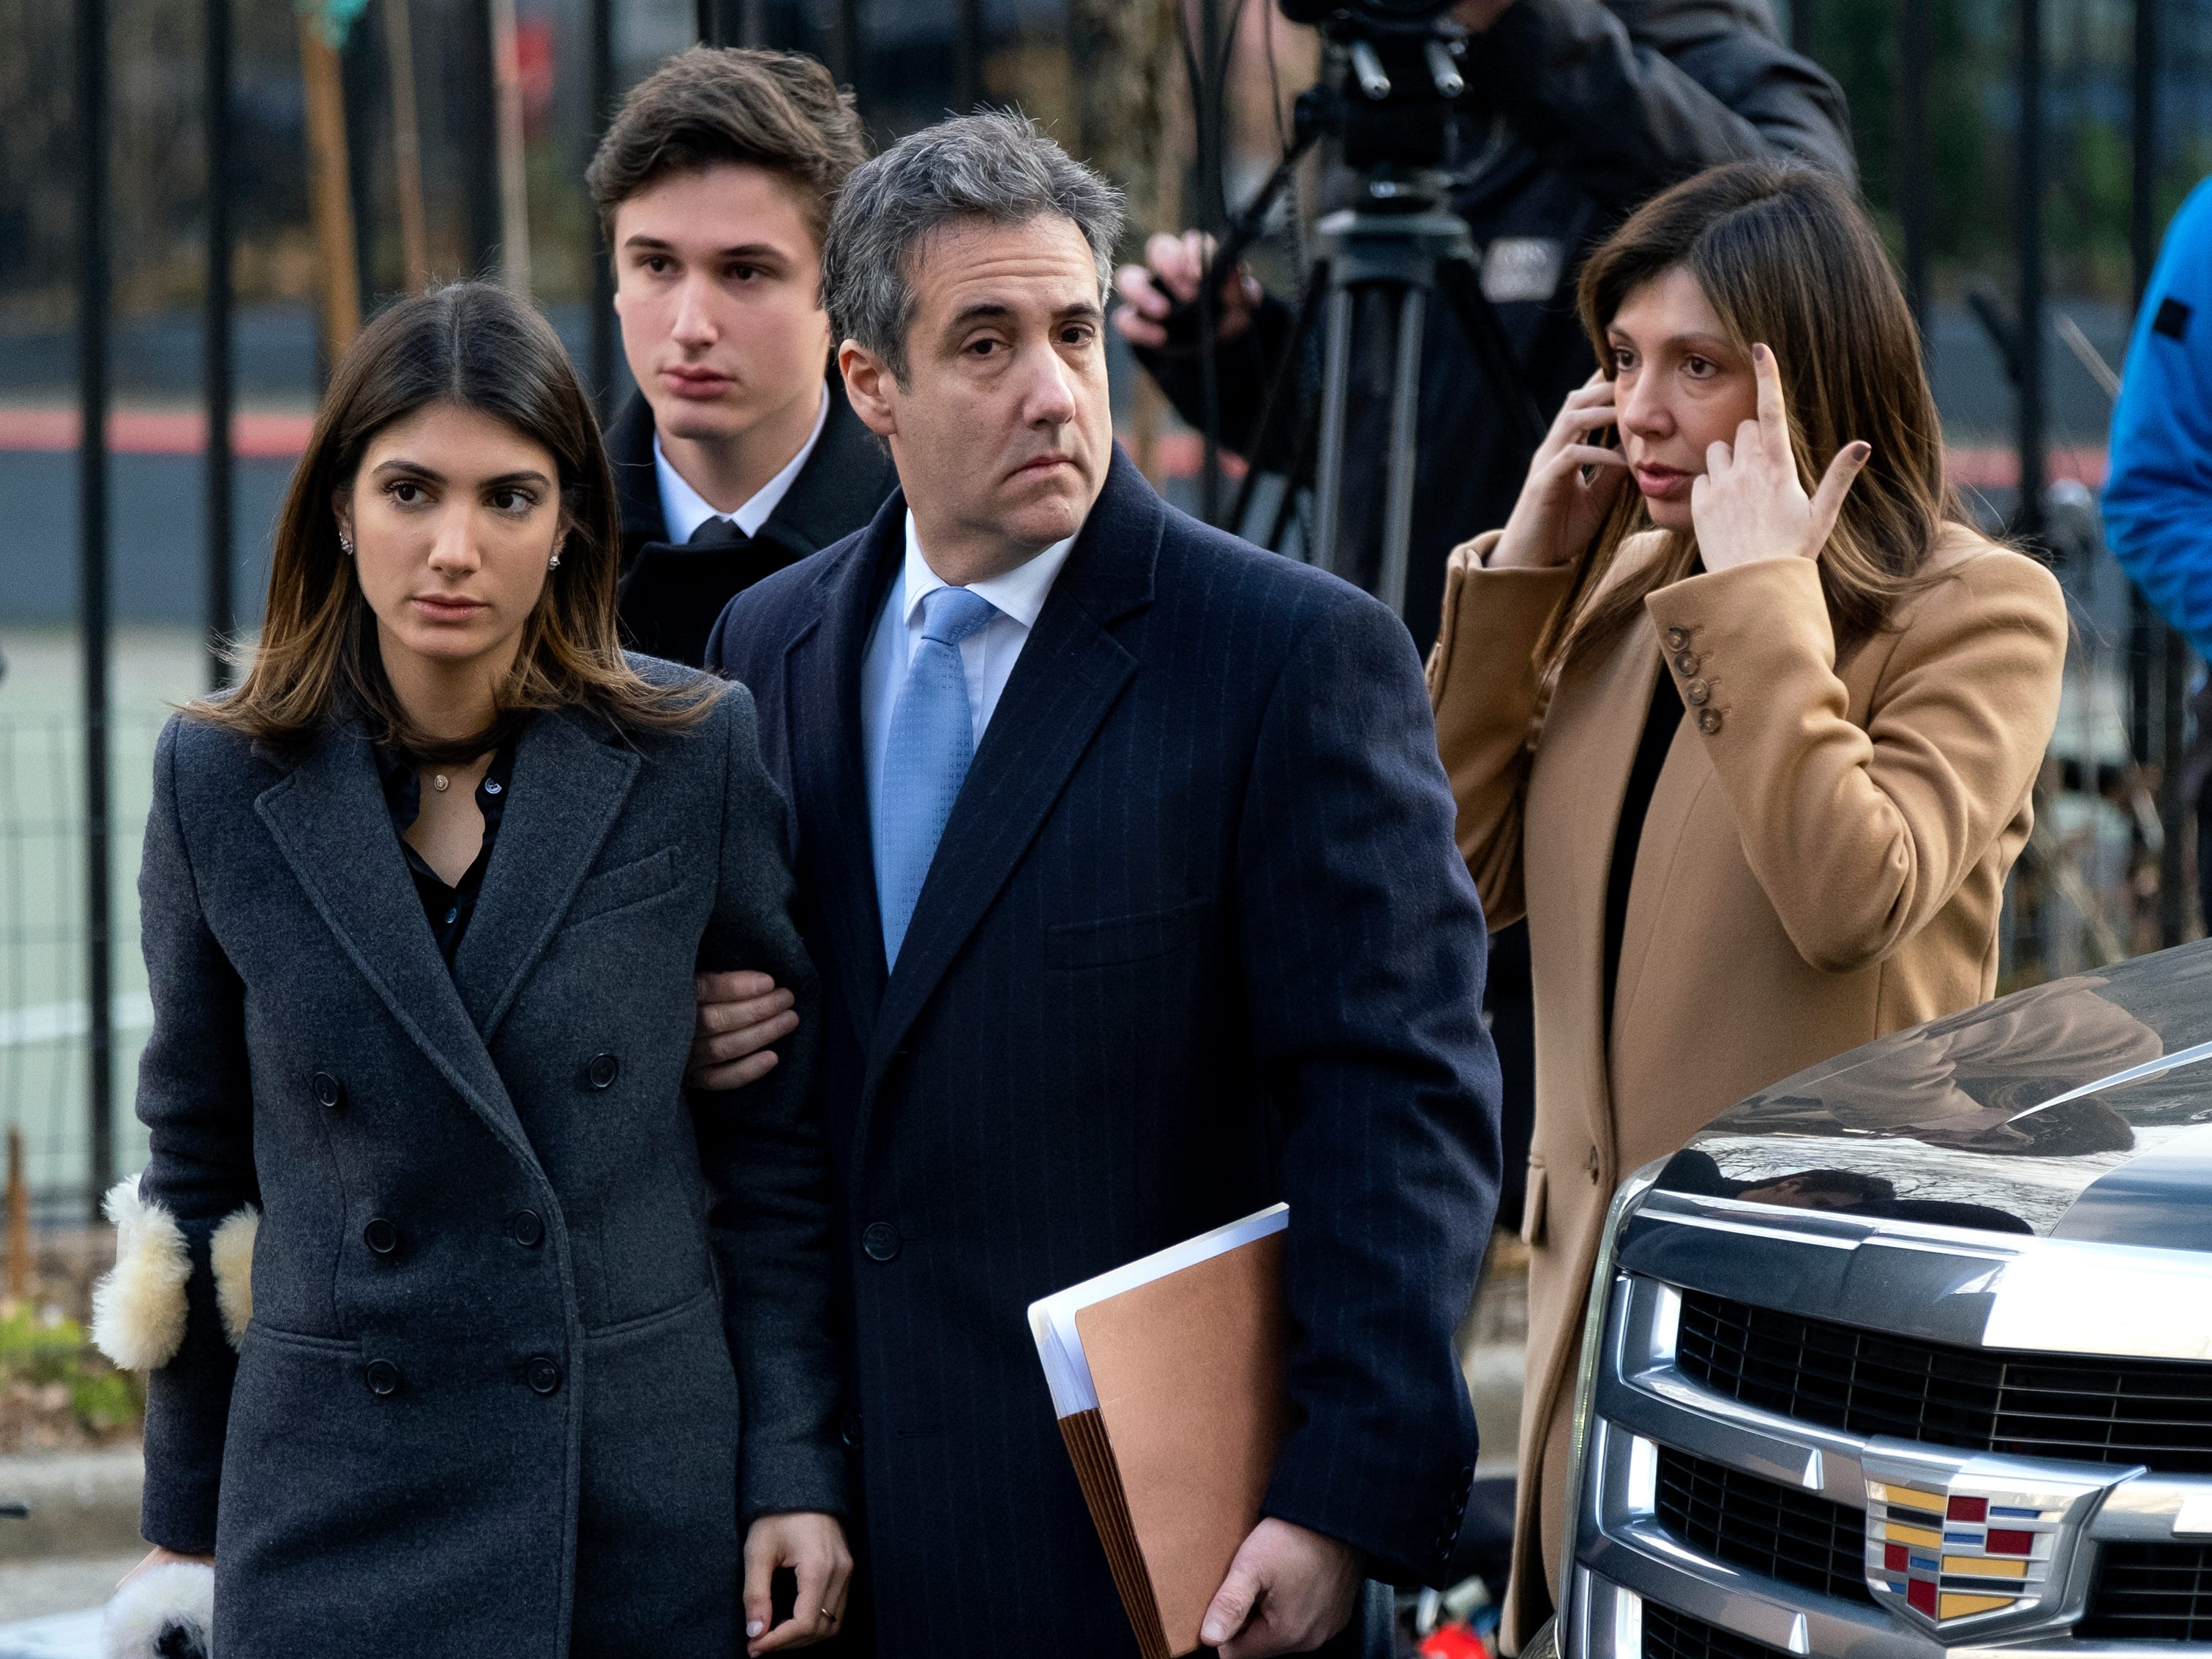 Michael Cohen, President Donald Trump's former lawyer, accompanied by his children, Samantha and Jake, and his wife, Laura Shusterman, arrives at federal court for his sentencing for dodging taxes, lying to Congress and violating campaign finance laws Wednesday, Dec. 12, 2018, in New York.